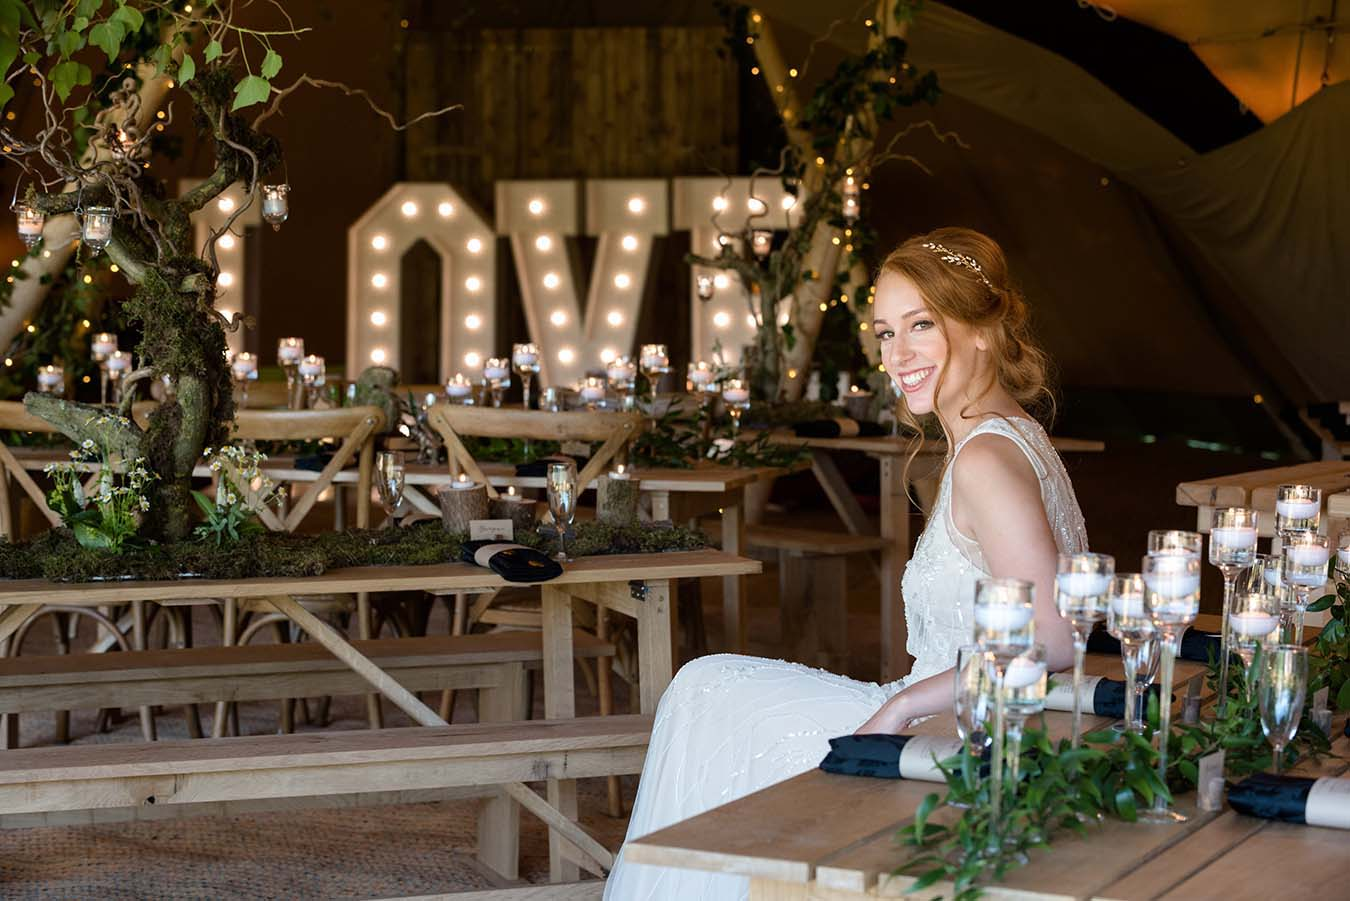 The Great Outdoor 'Teepees & Tents' Wedding Shoot